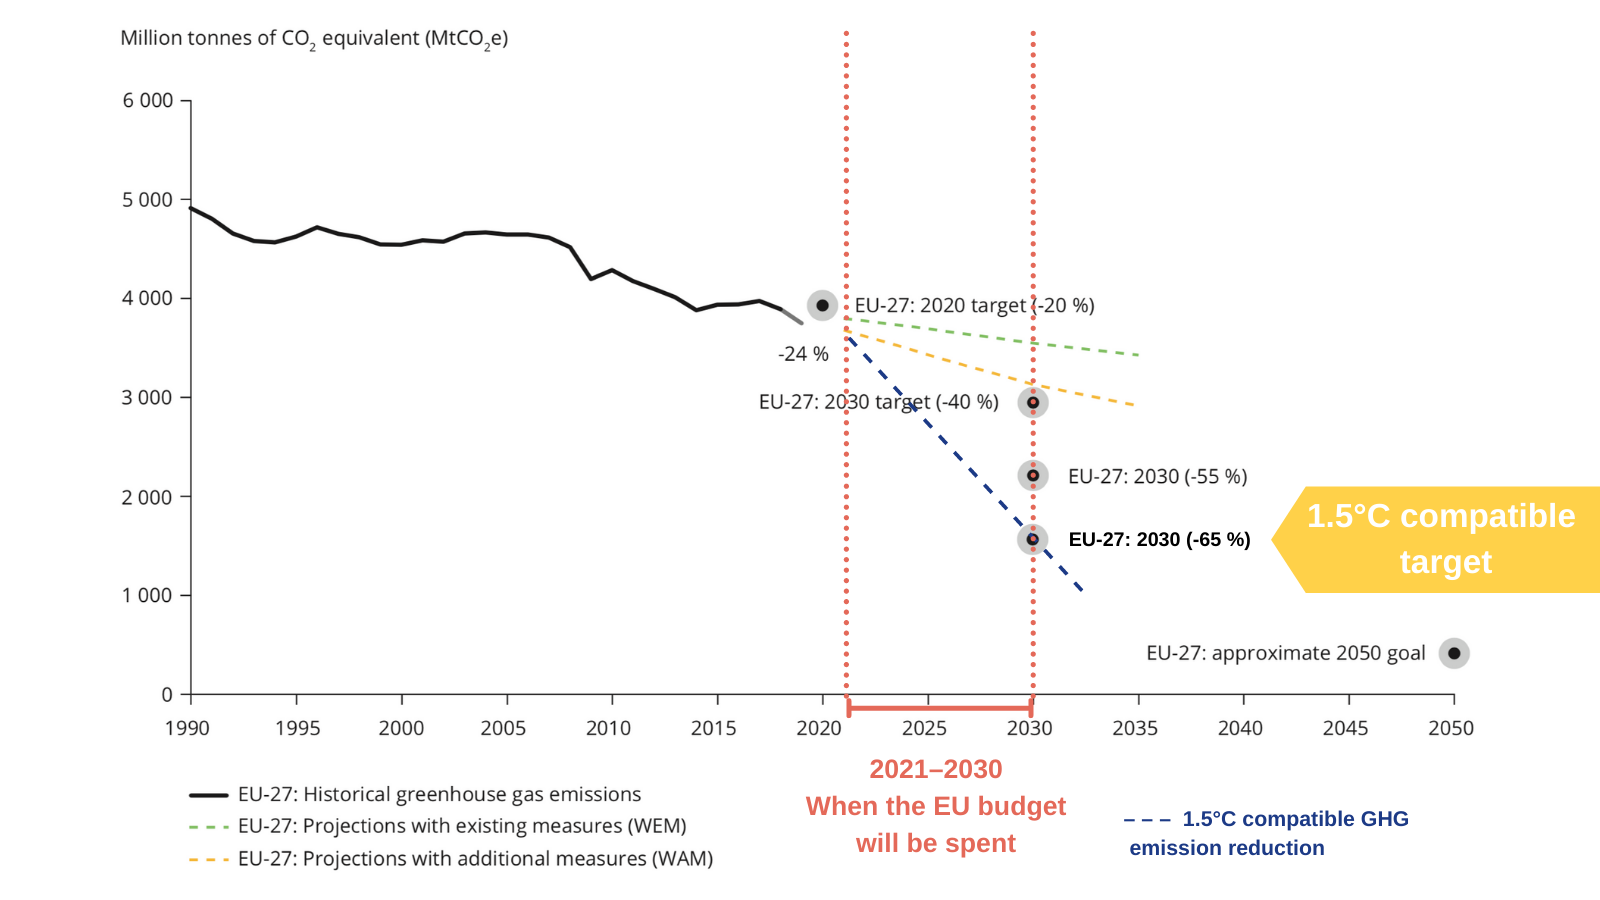 EU greenhouse gas emissions must decrease sharply in the next few years